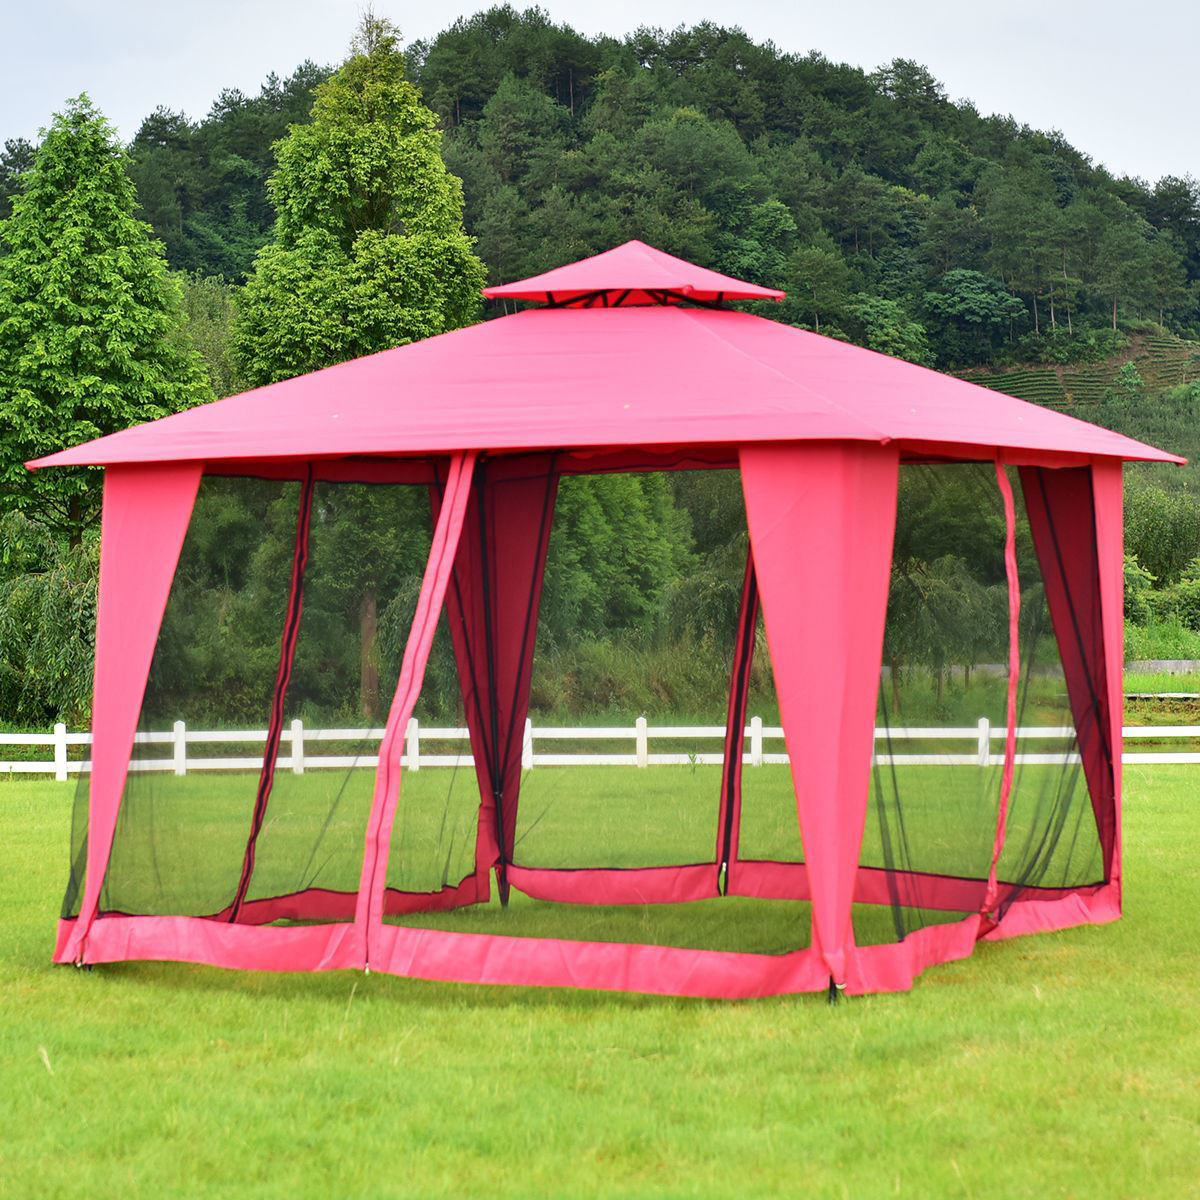 Picture of Outdoor 11'x11' Patio Canopy Tent Gazebo 2-Tier Burgundy